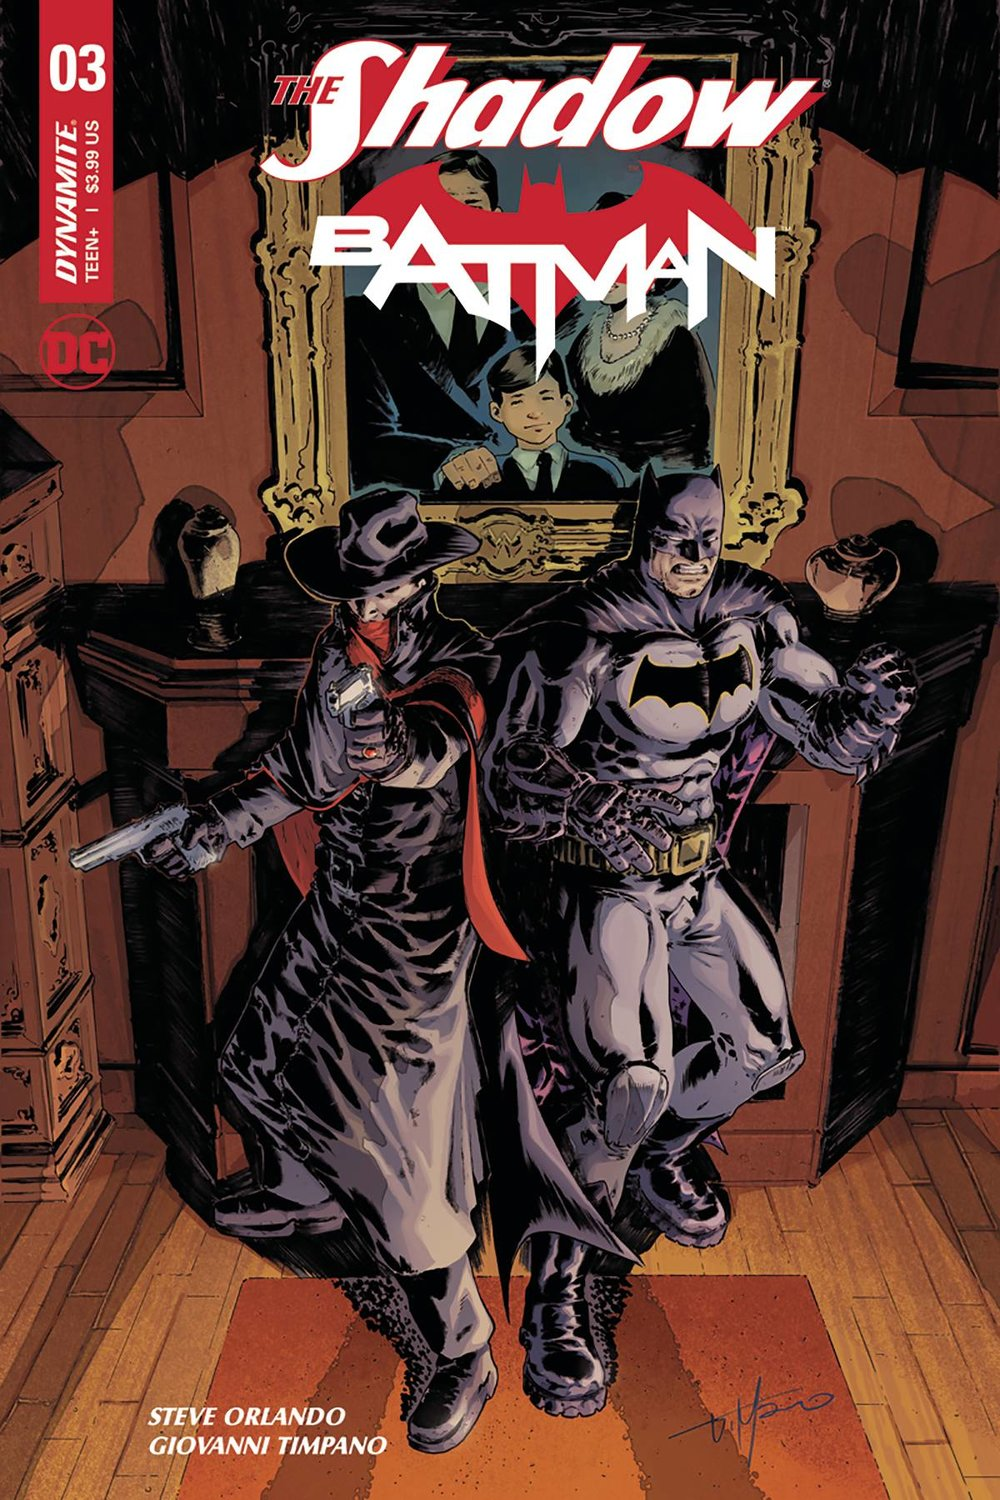 SHADOW BATMAN 3 of 6 CVR E EXC SUBSCRIPTION VAR.jpg